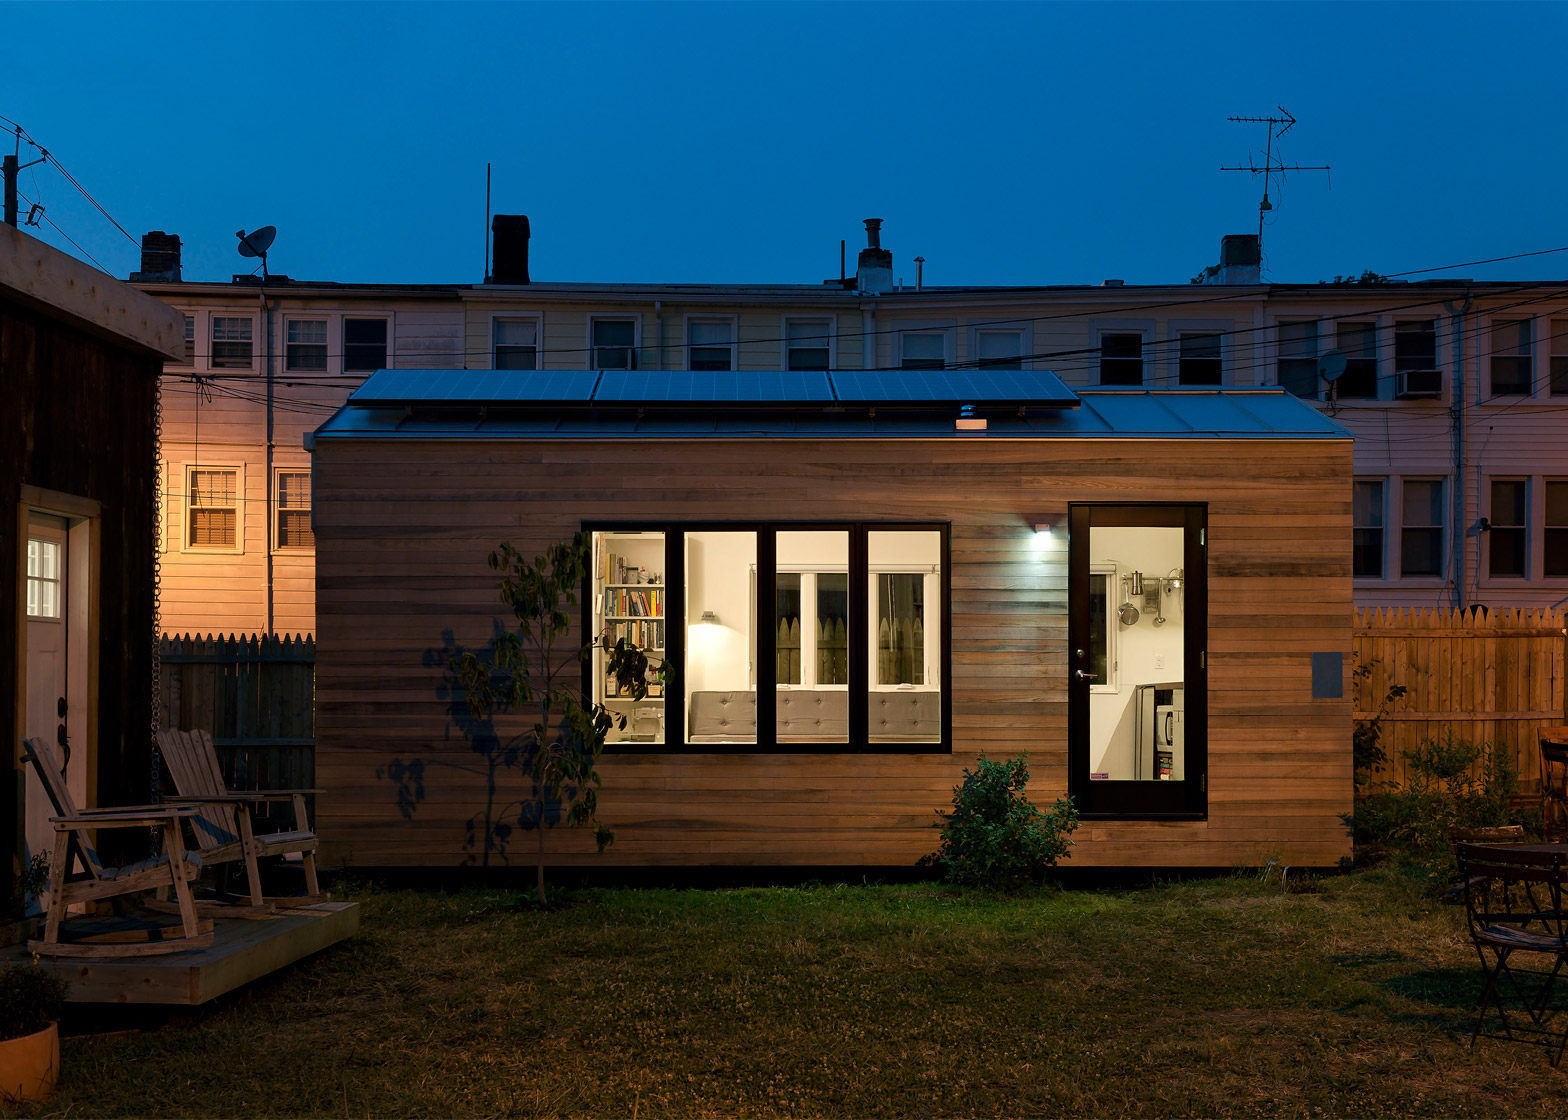 House Architects plans for tiny house now available for purchase